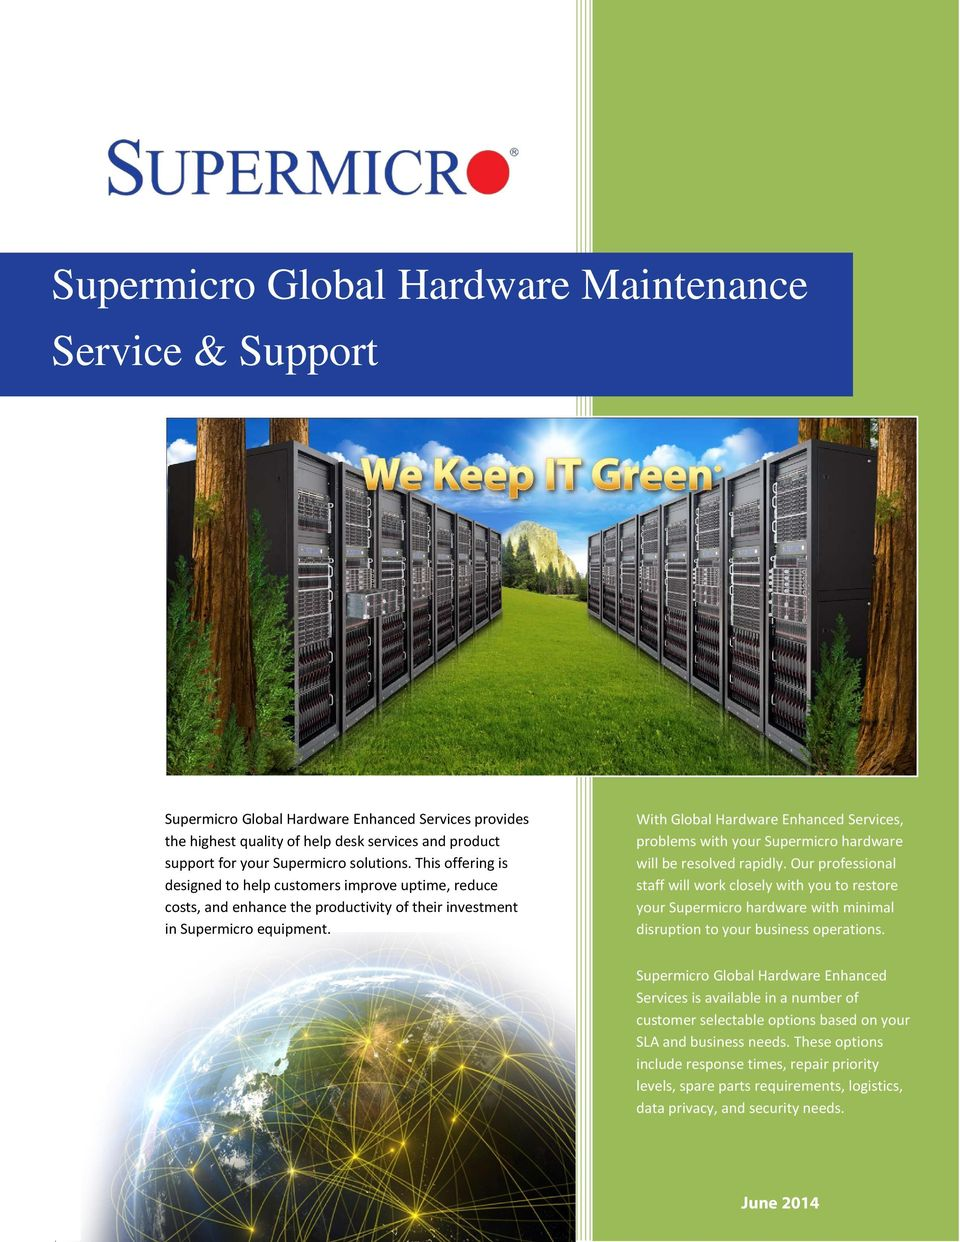 With Global Hardware Enhanced Services, problems with your Supermicro hardware will be resolved rapidly.